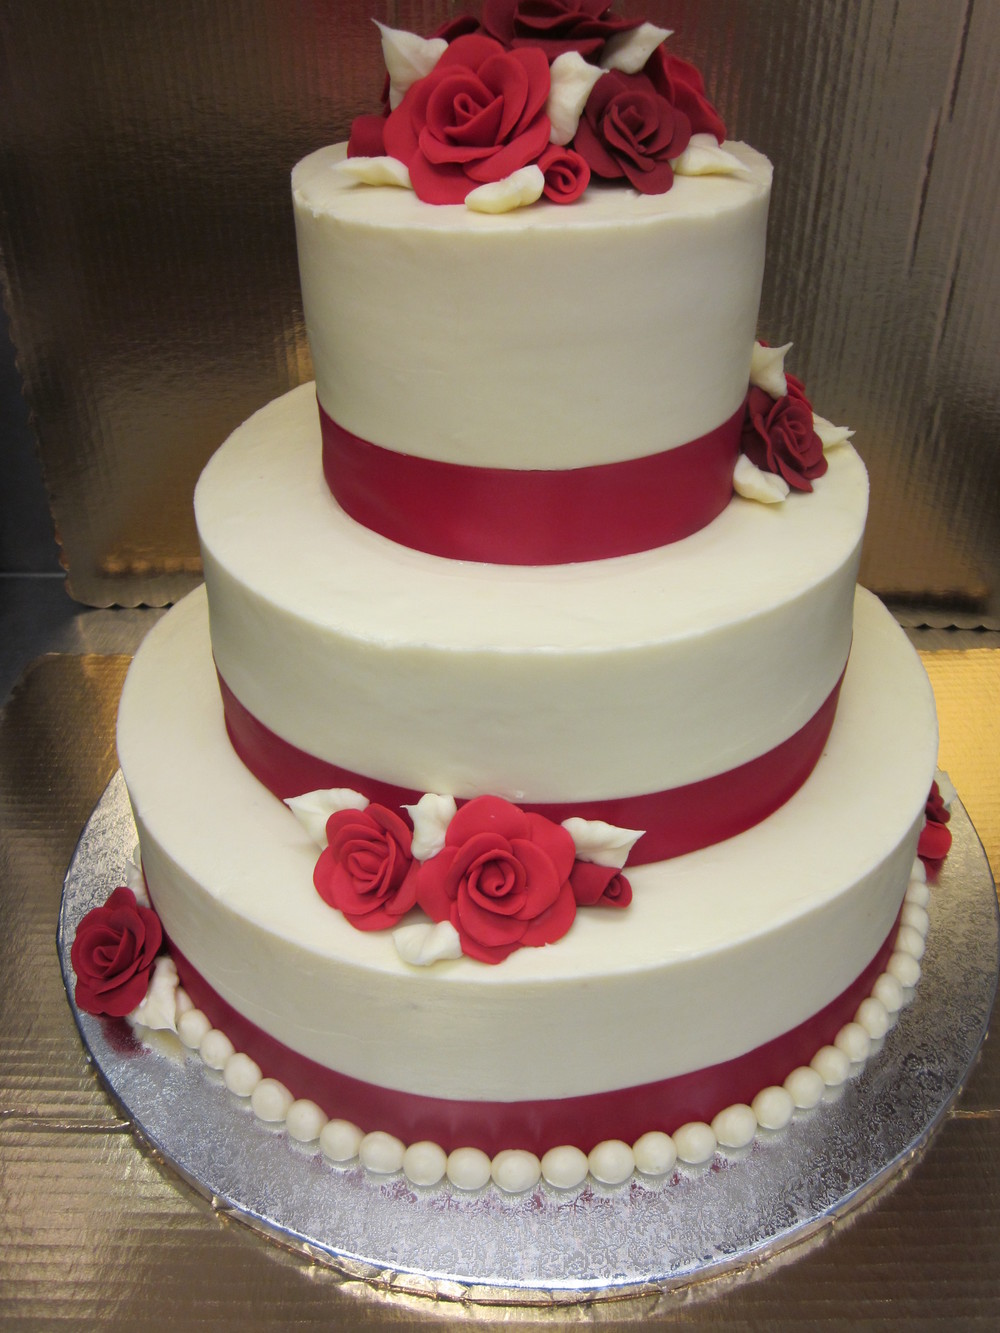 Red Roses, Red Ribbon Cake